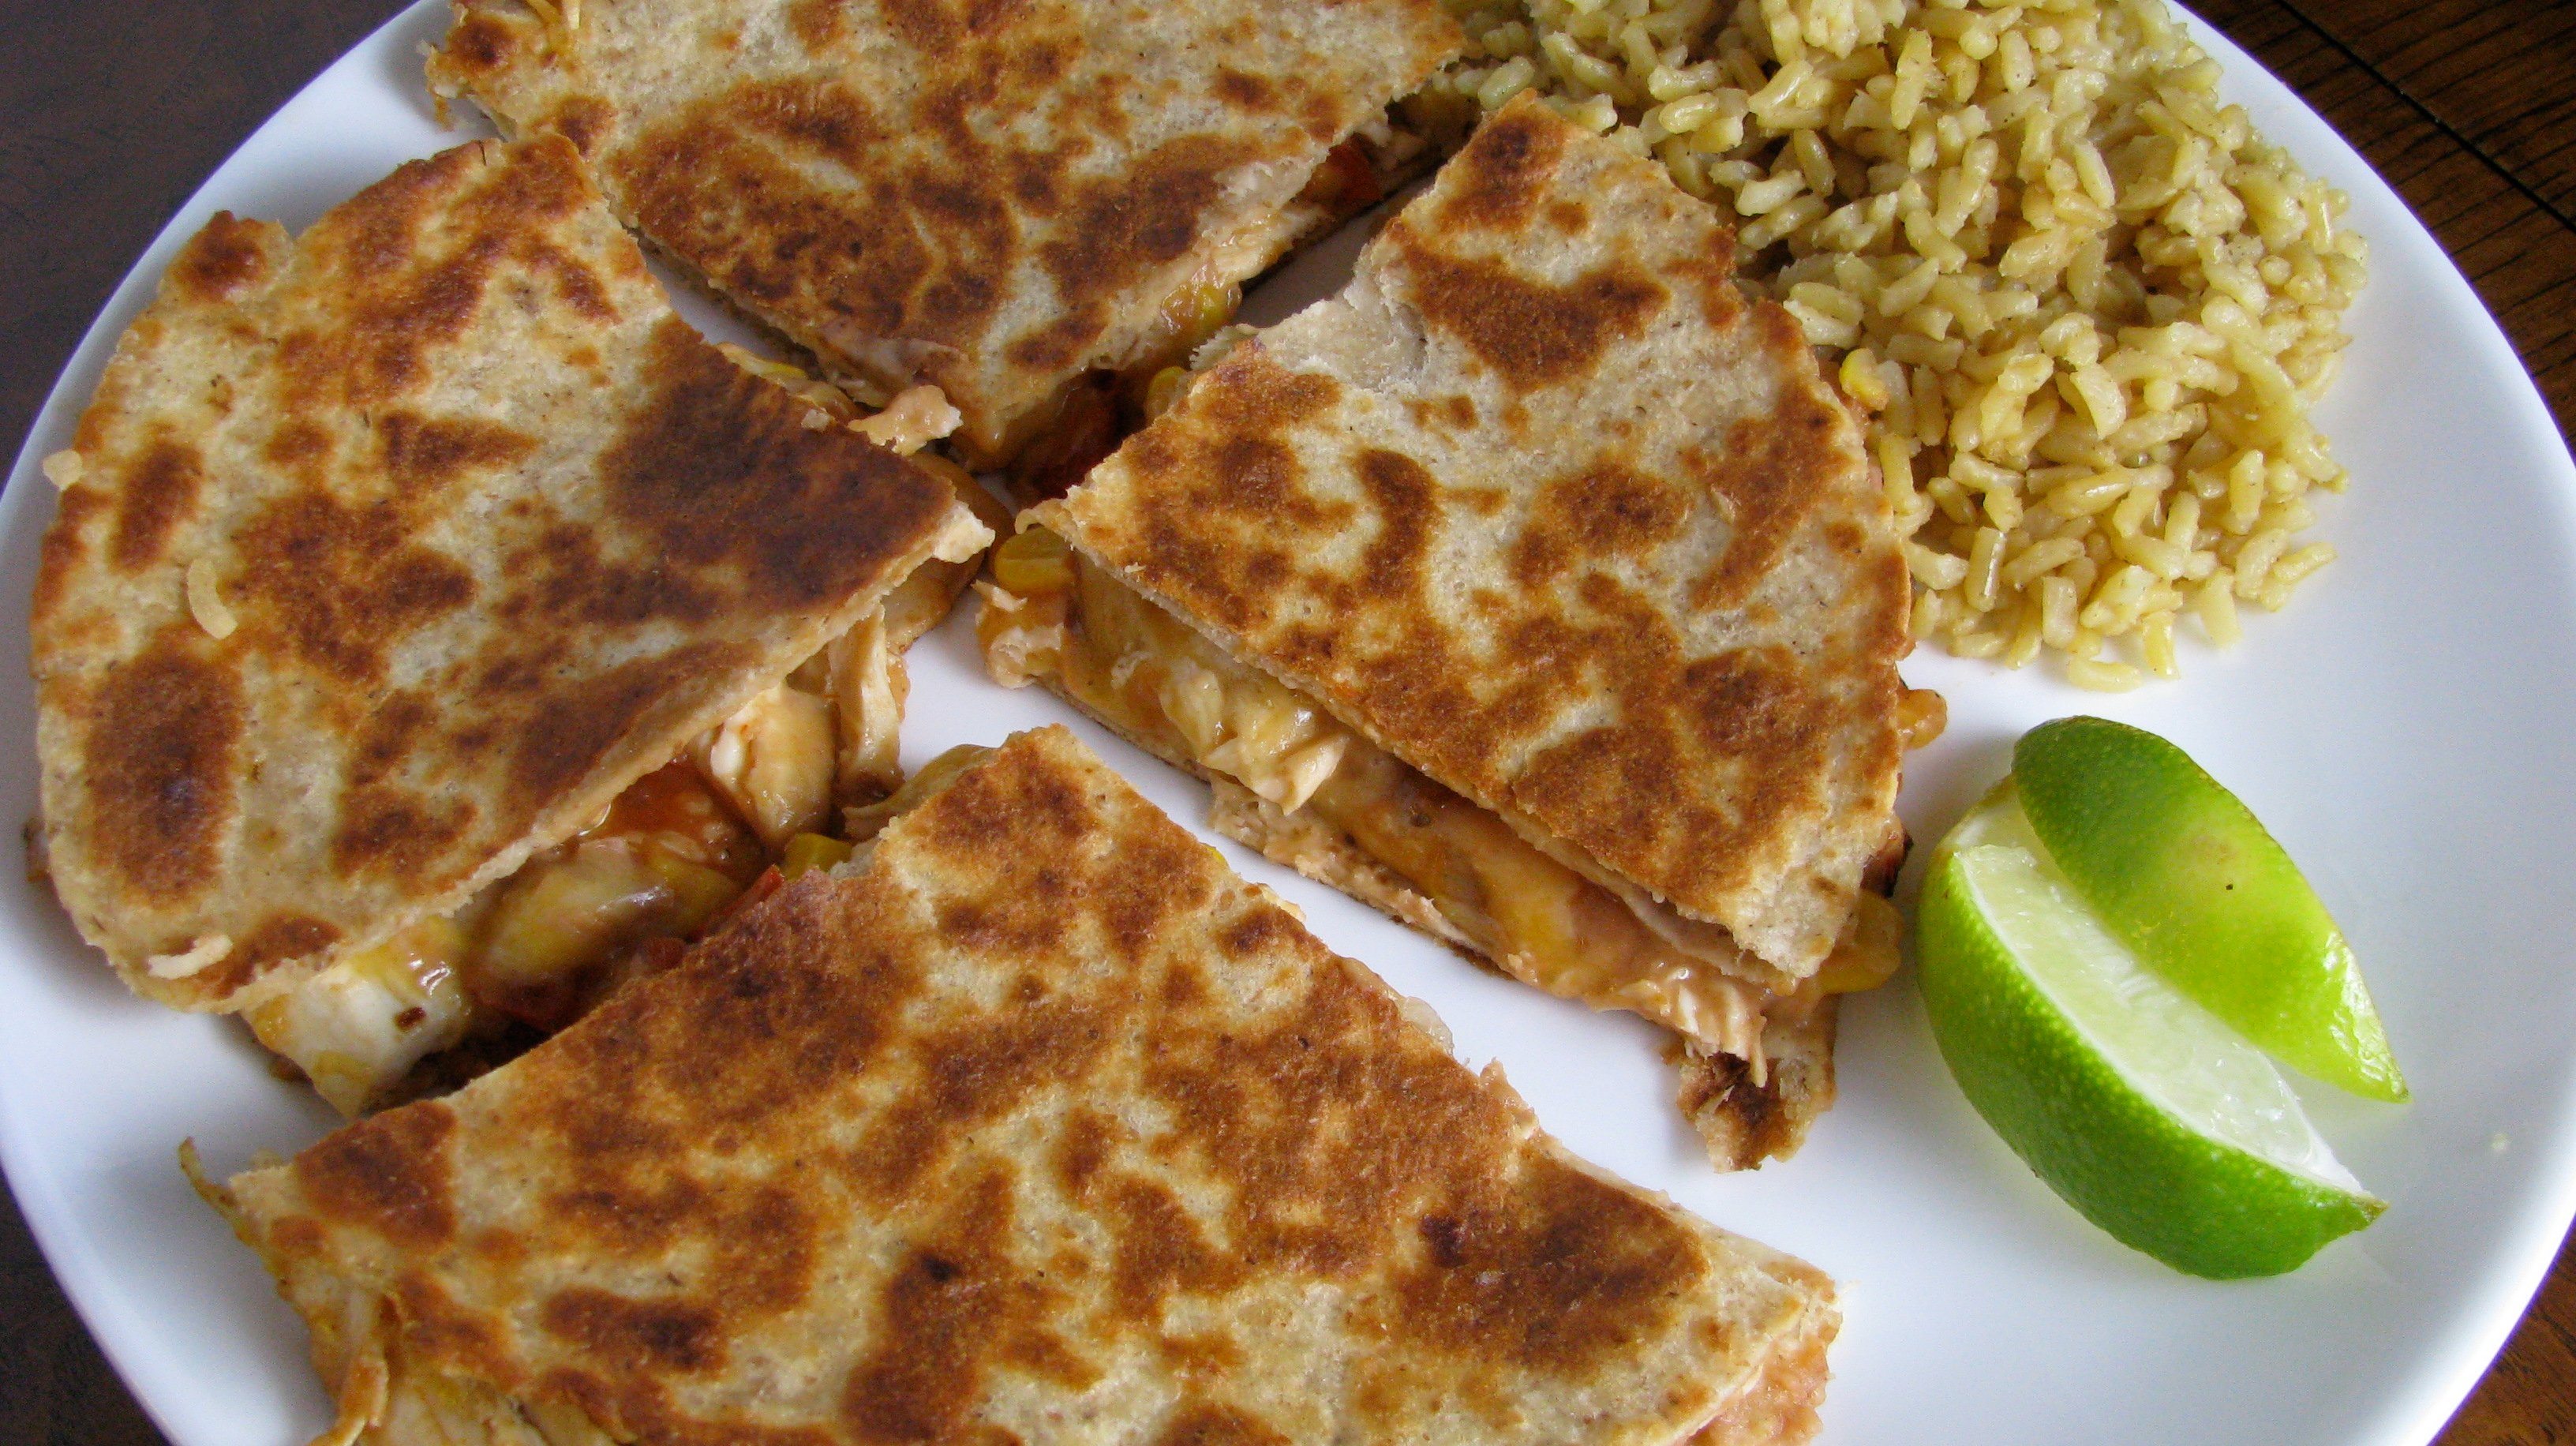 ... about these chicken quesadillas? They are protein-packed and healthy